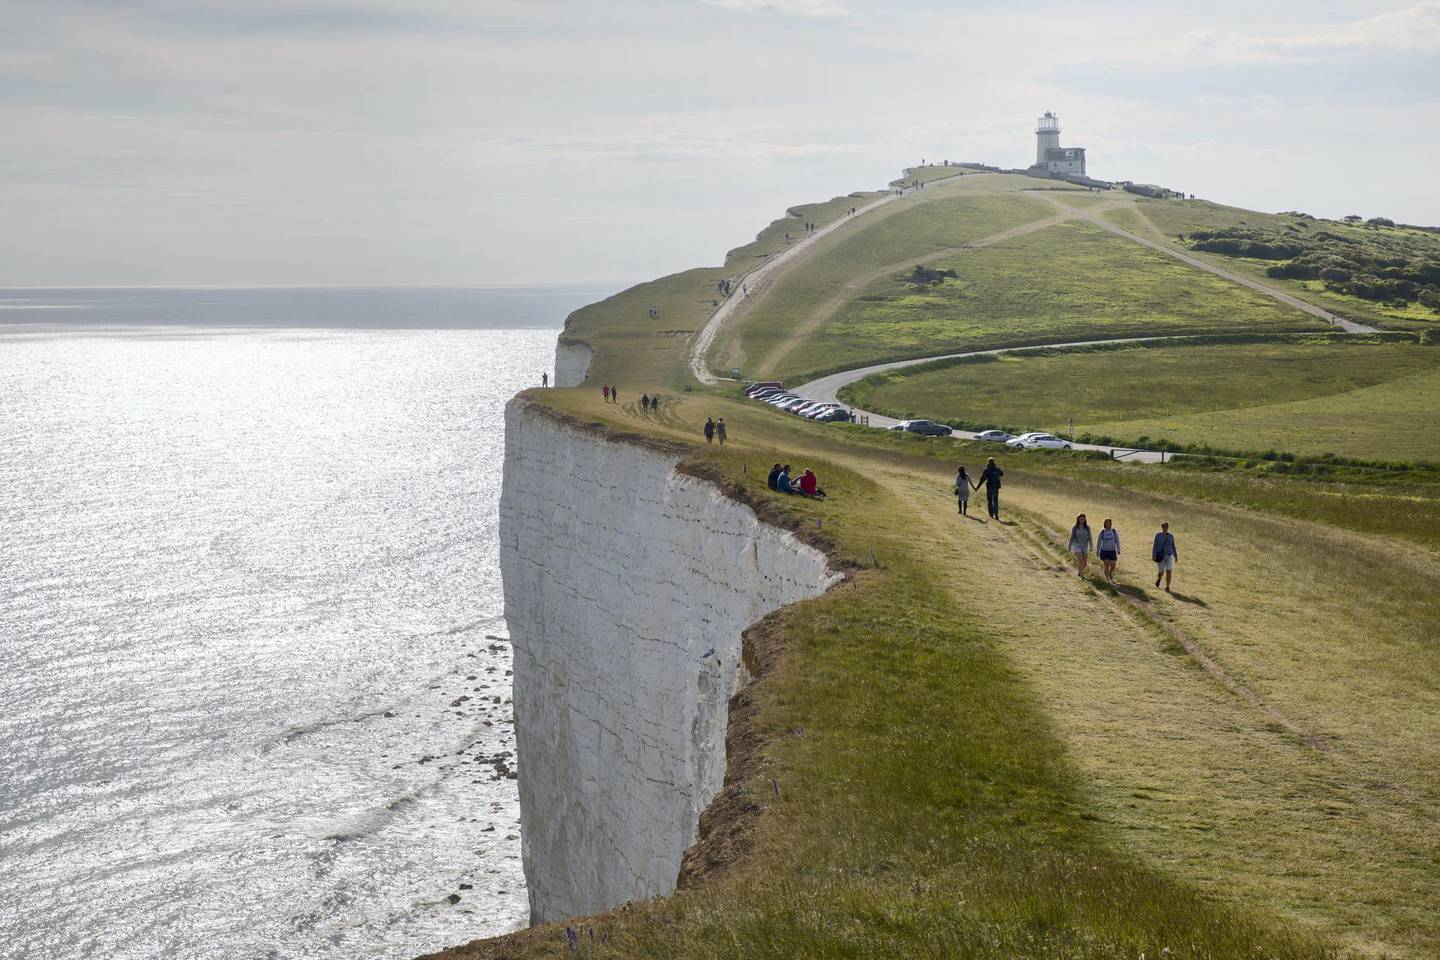 SEAFORD, ENGLAND - MAY 25 : Seven sisters cliffs on May 25, 2019 in Seaford, England. (Photo by Athanasios Gioumpasis/Getty Images)